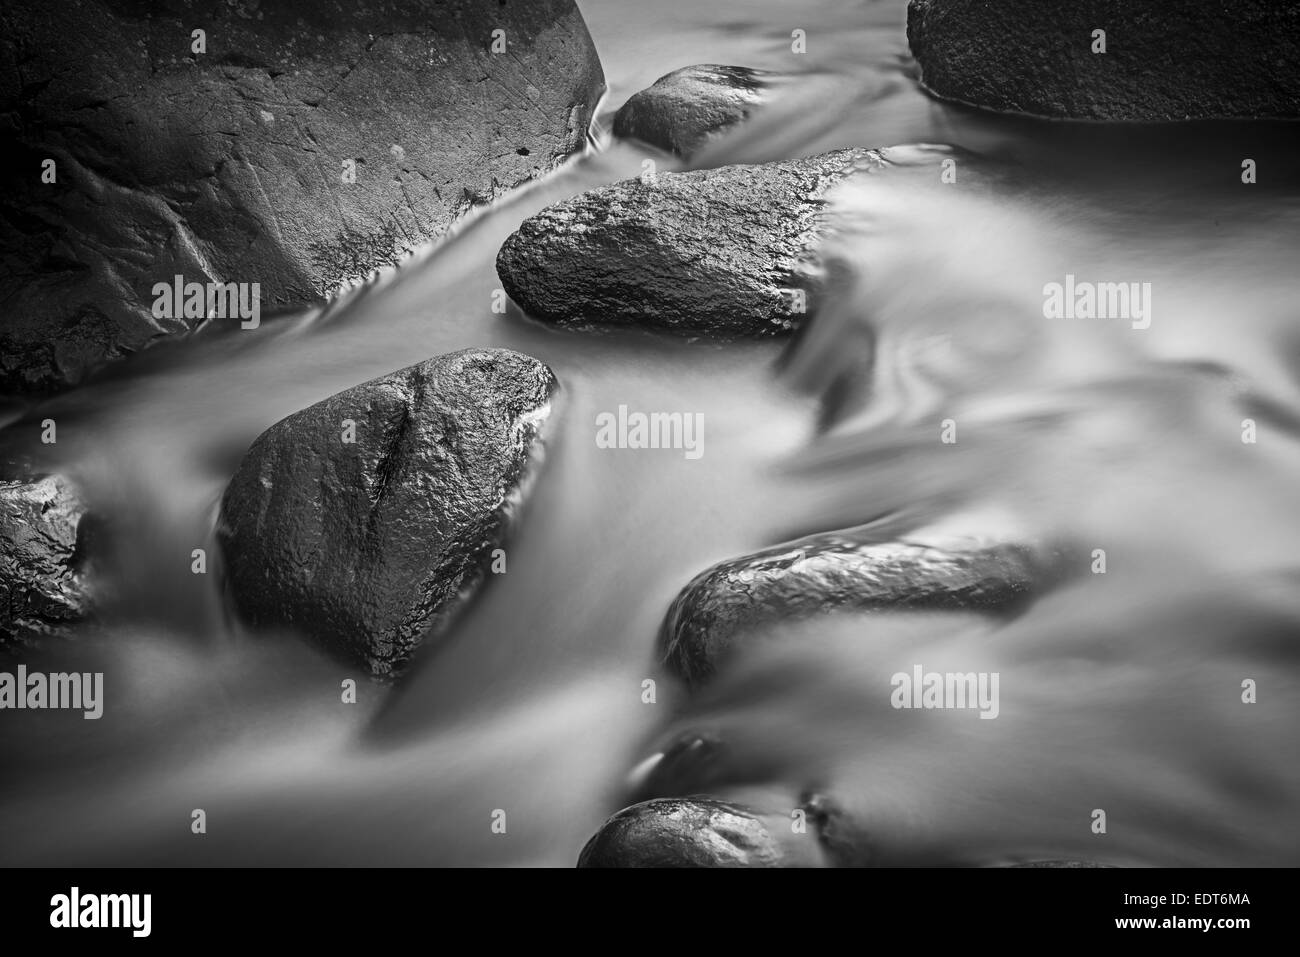 Flowing Water & Rocks In Stream Black & White - Stock Image